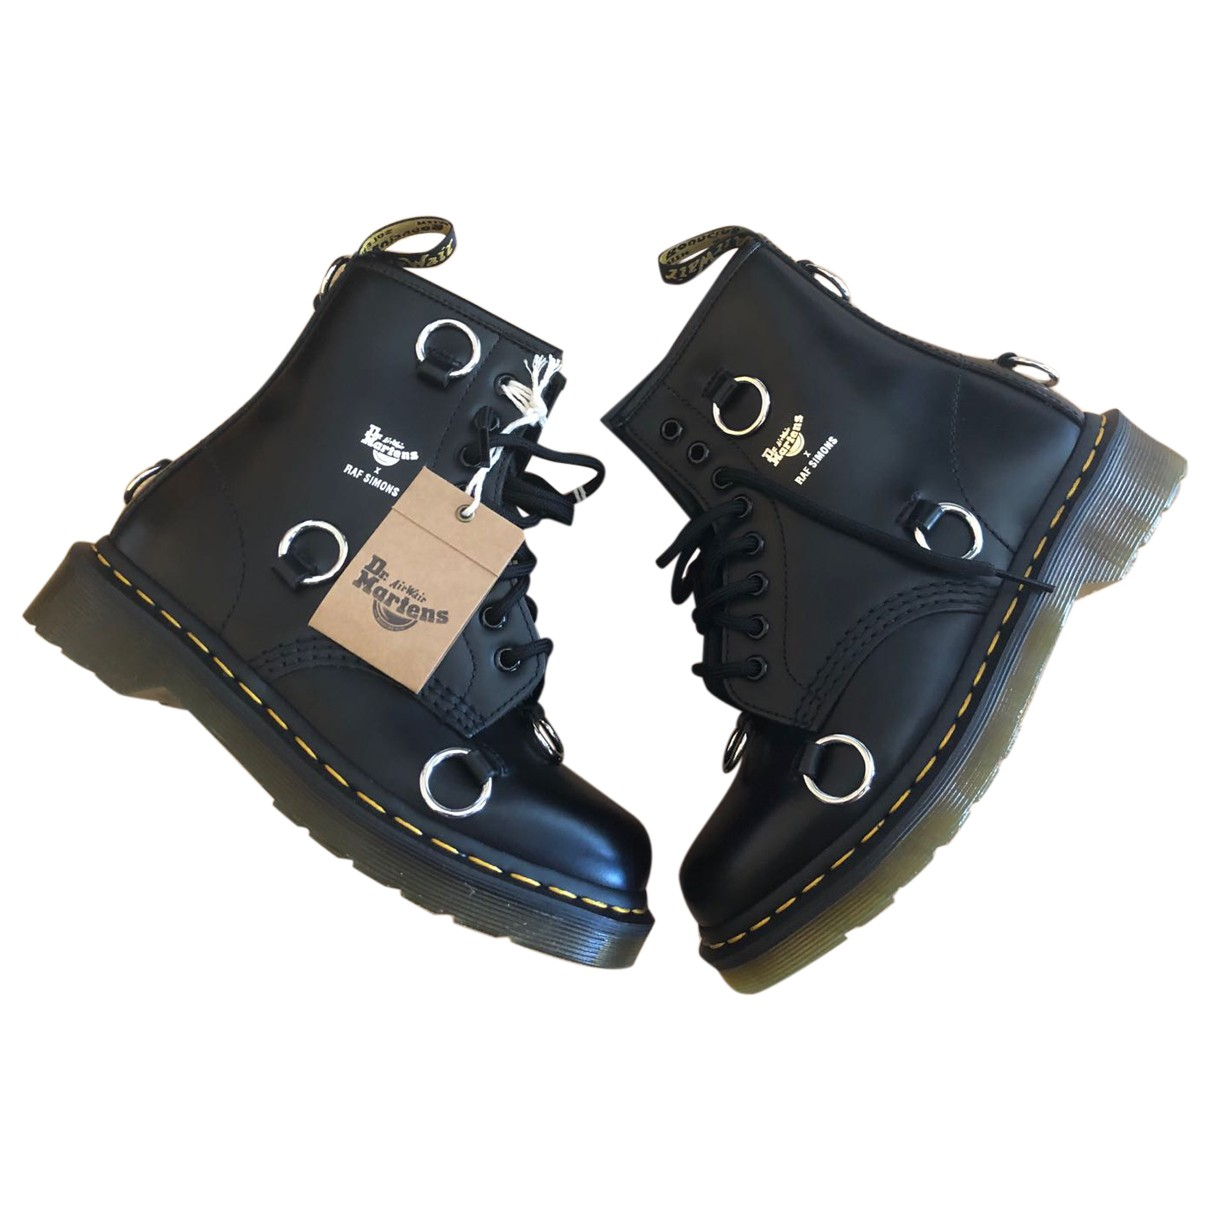 Dr. Martens 1460 Pascal (8 eye) Black Leather Boots for Women 37 EU